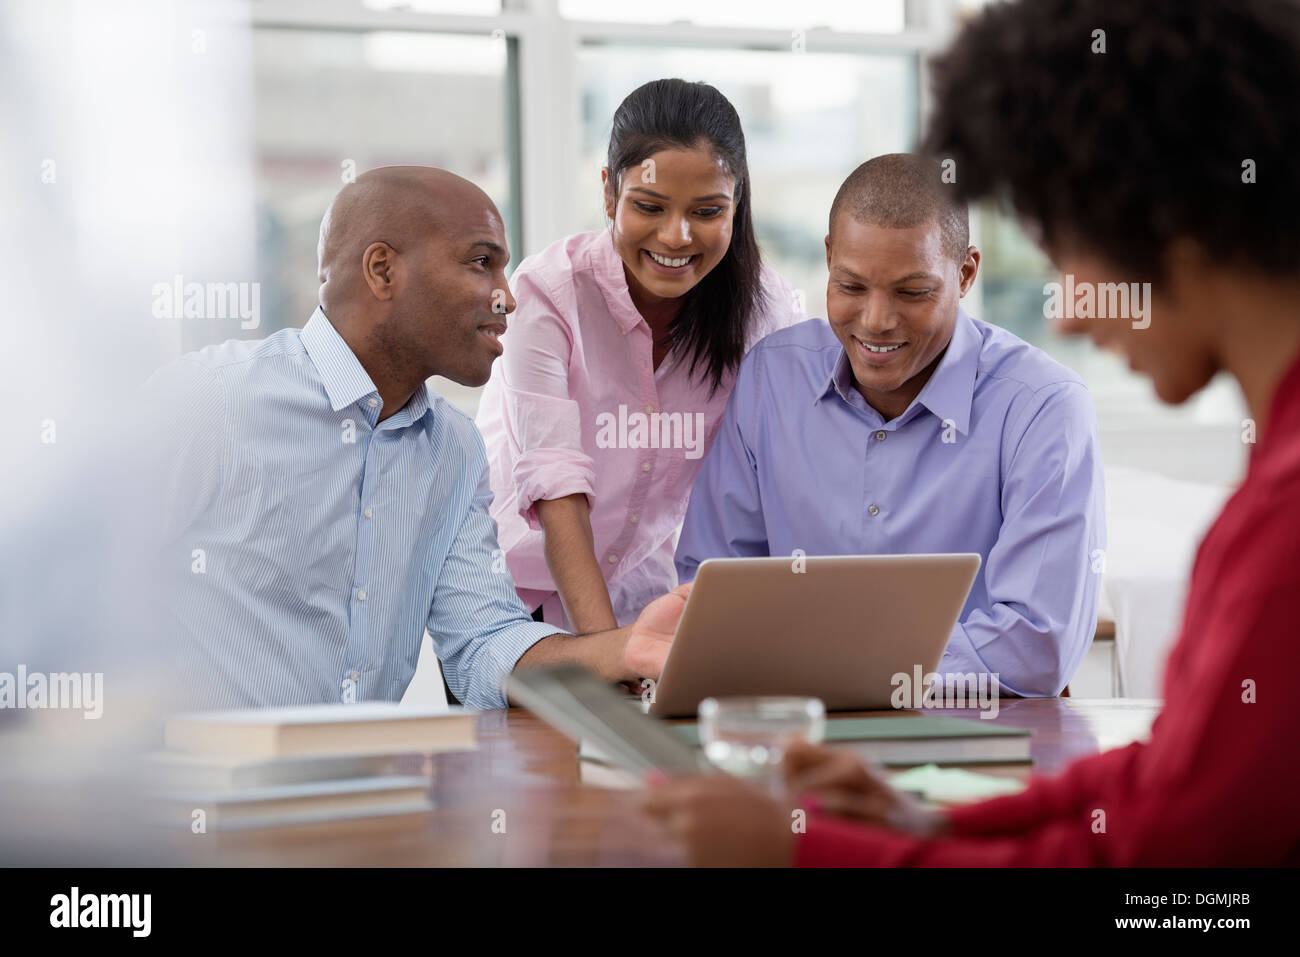 Office life. Four people working around a table, using digital tablets and laptops. - Stock Image